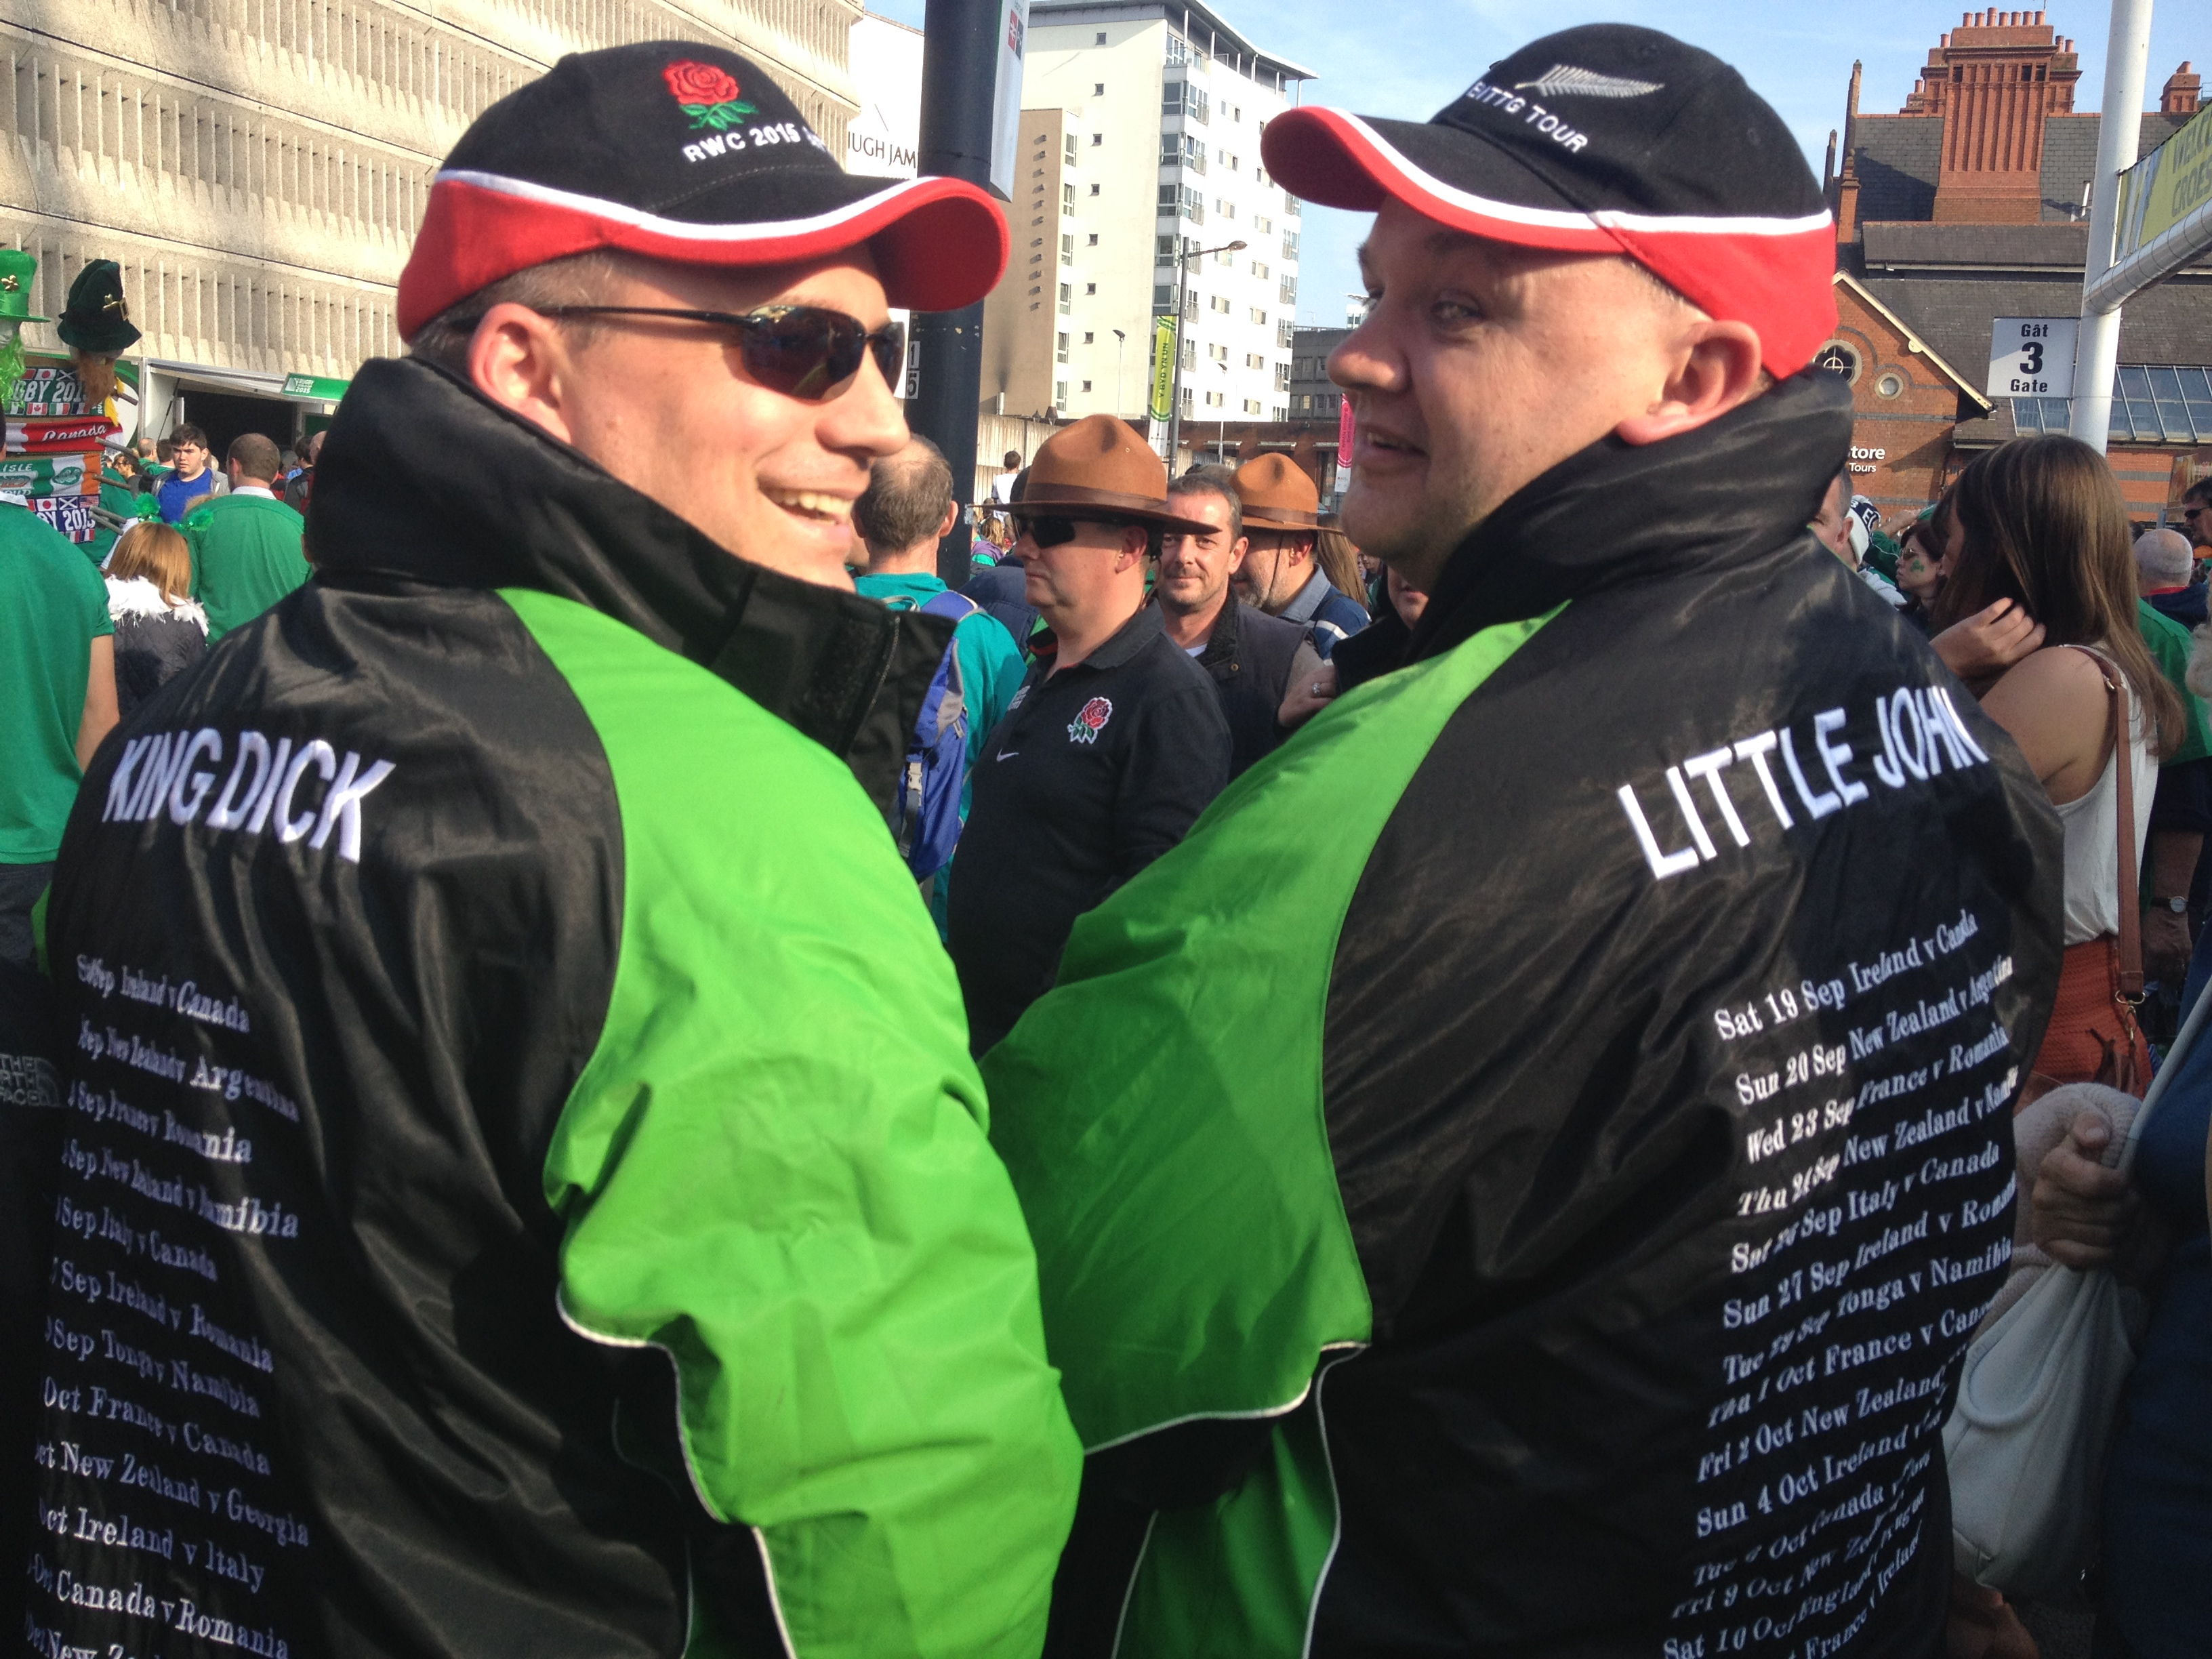 King Dick and Little John (two guys wearing jackets , one is King Dick and the other, is Little John RWC2015